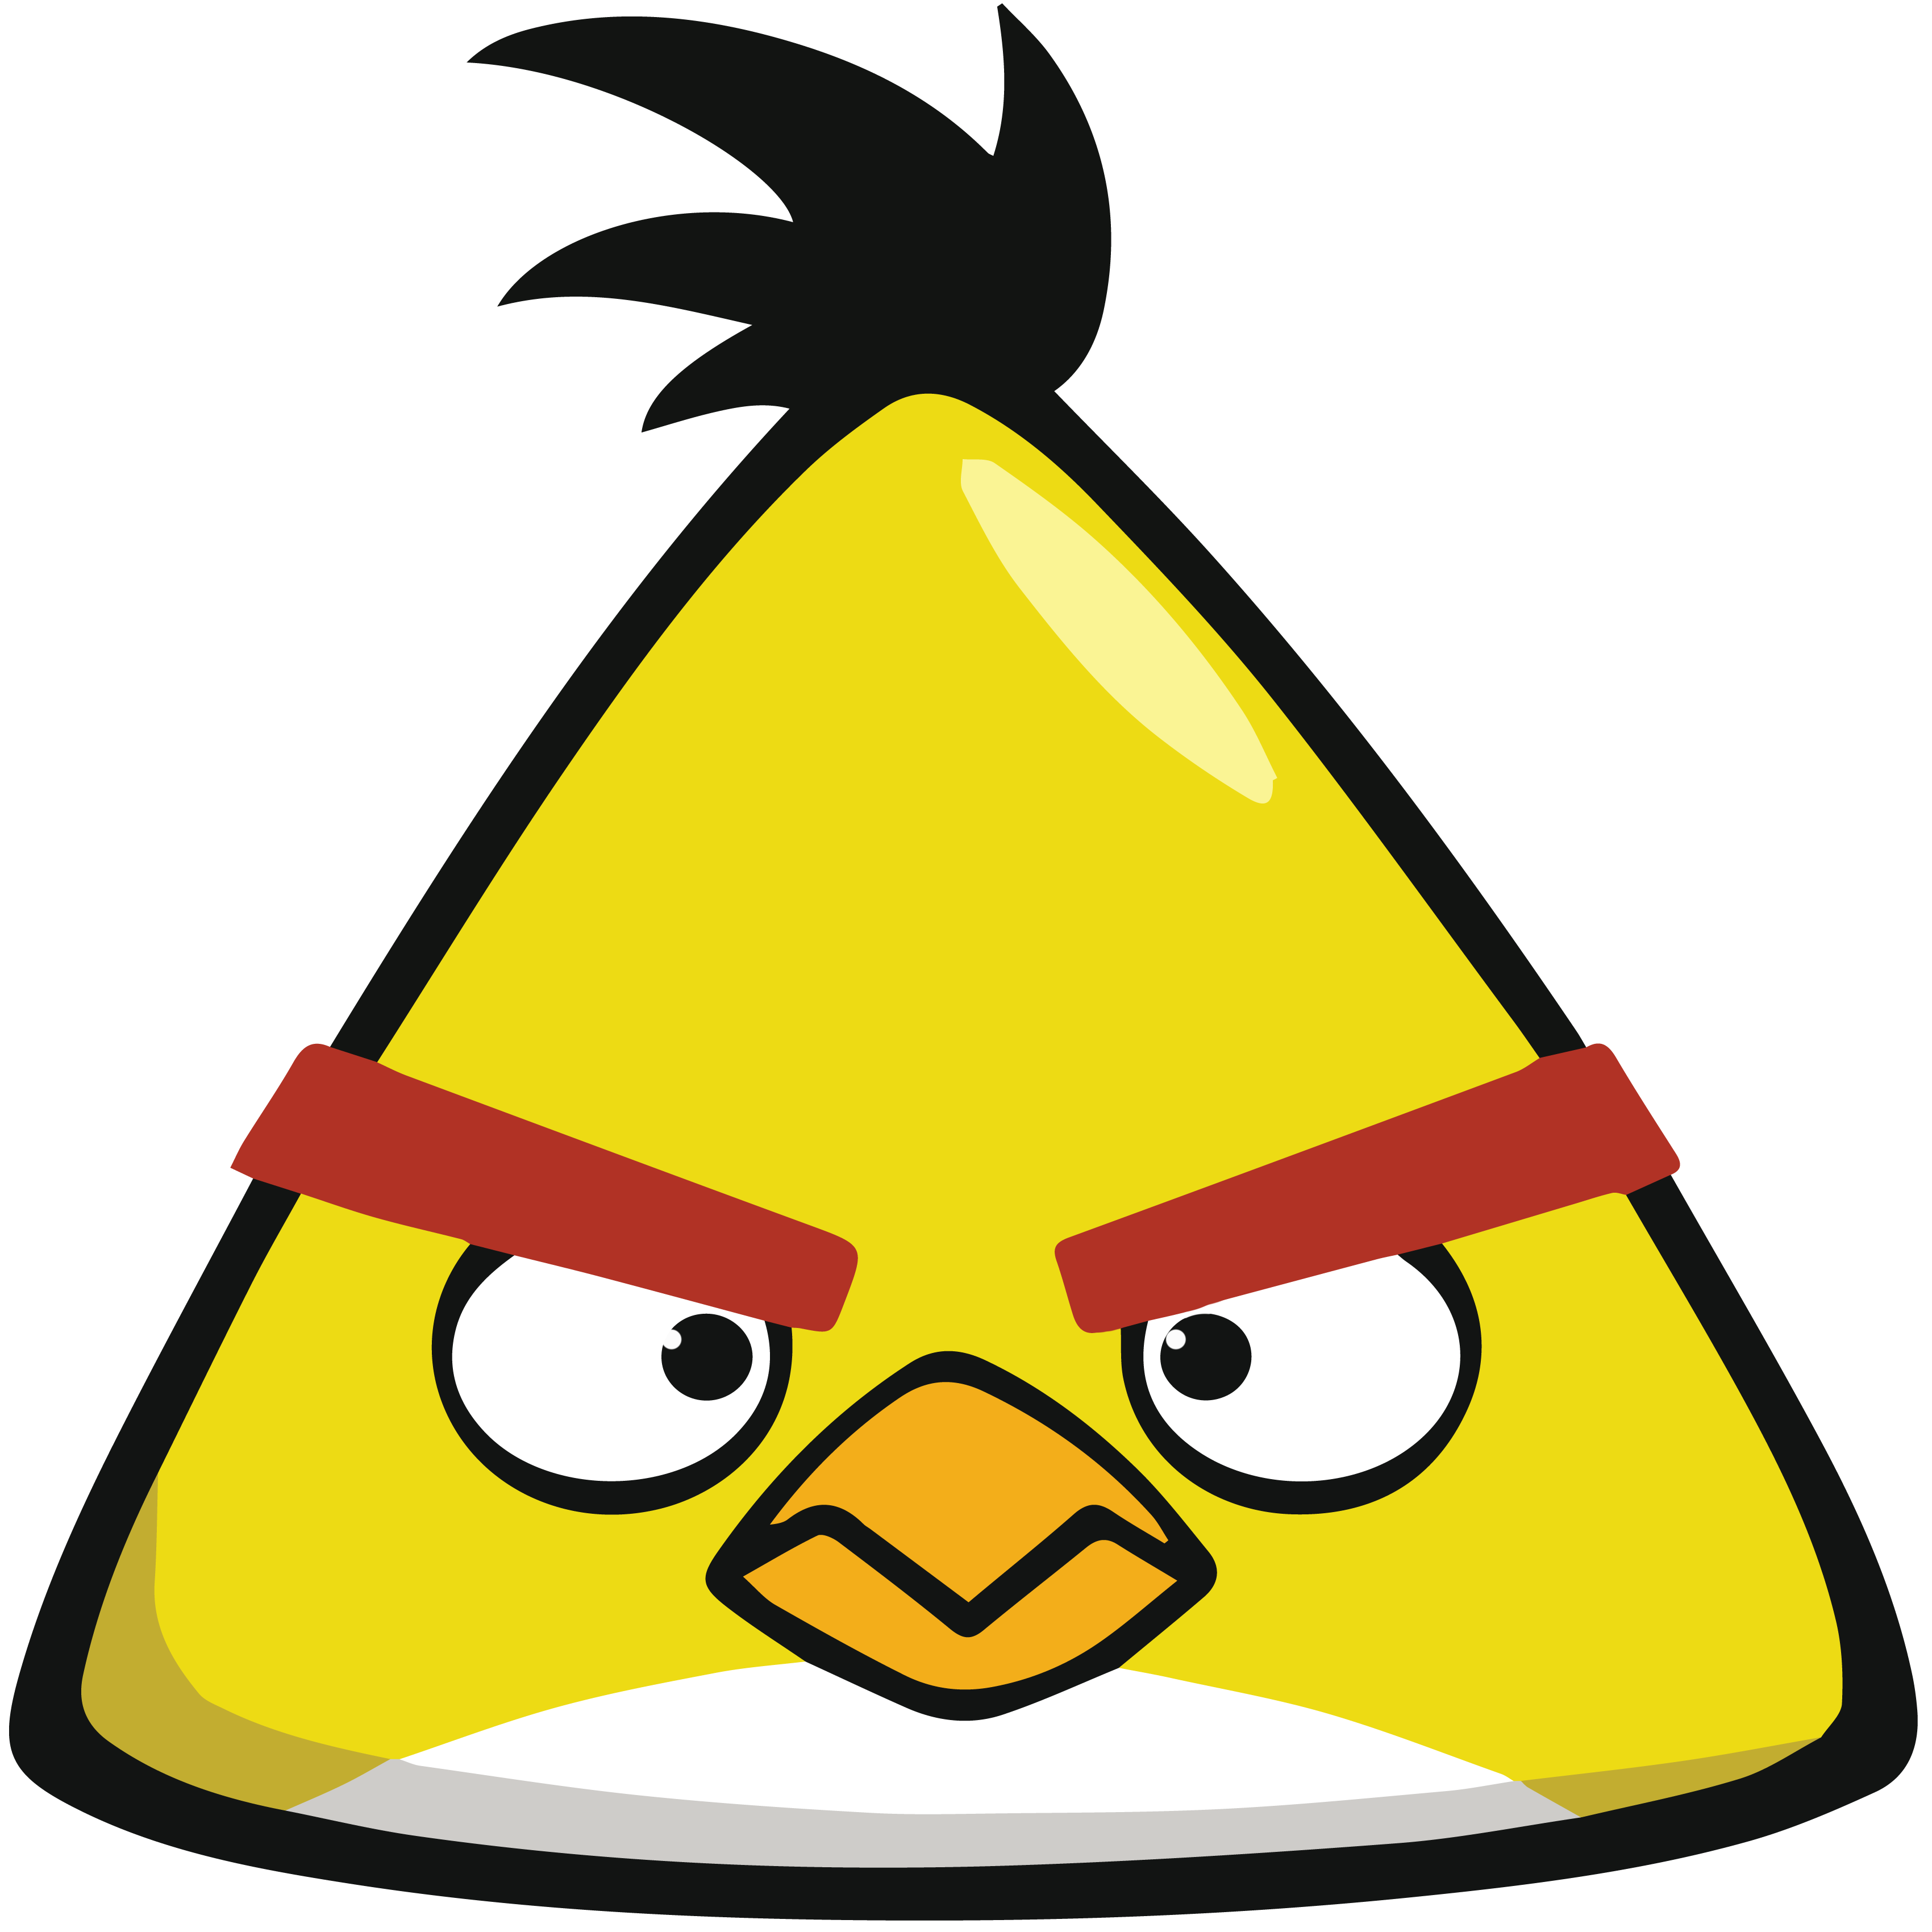 Angry Birds Chuck Yellow Super High Quality By Tomefc98 Deviantart Com On Deviantart Chuck Angry Birds Angry Birds Characters Angry Birds